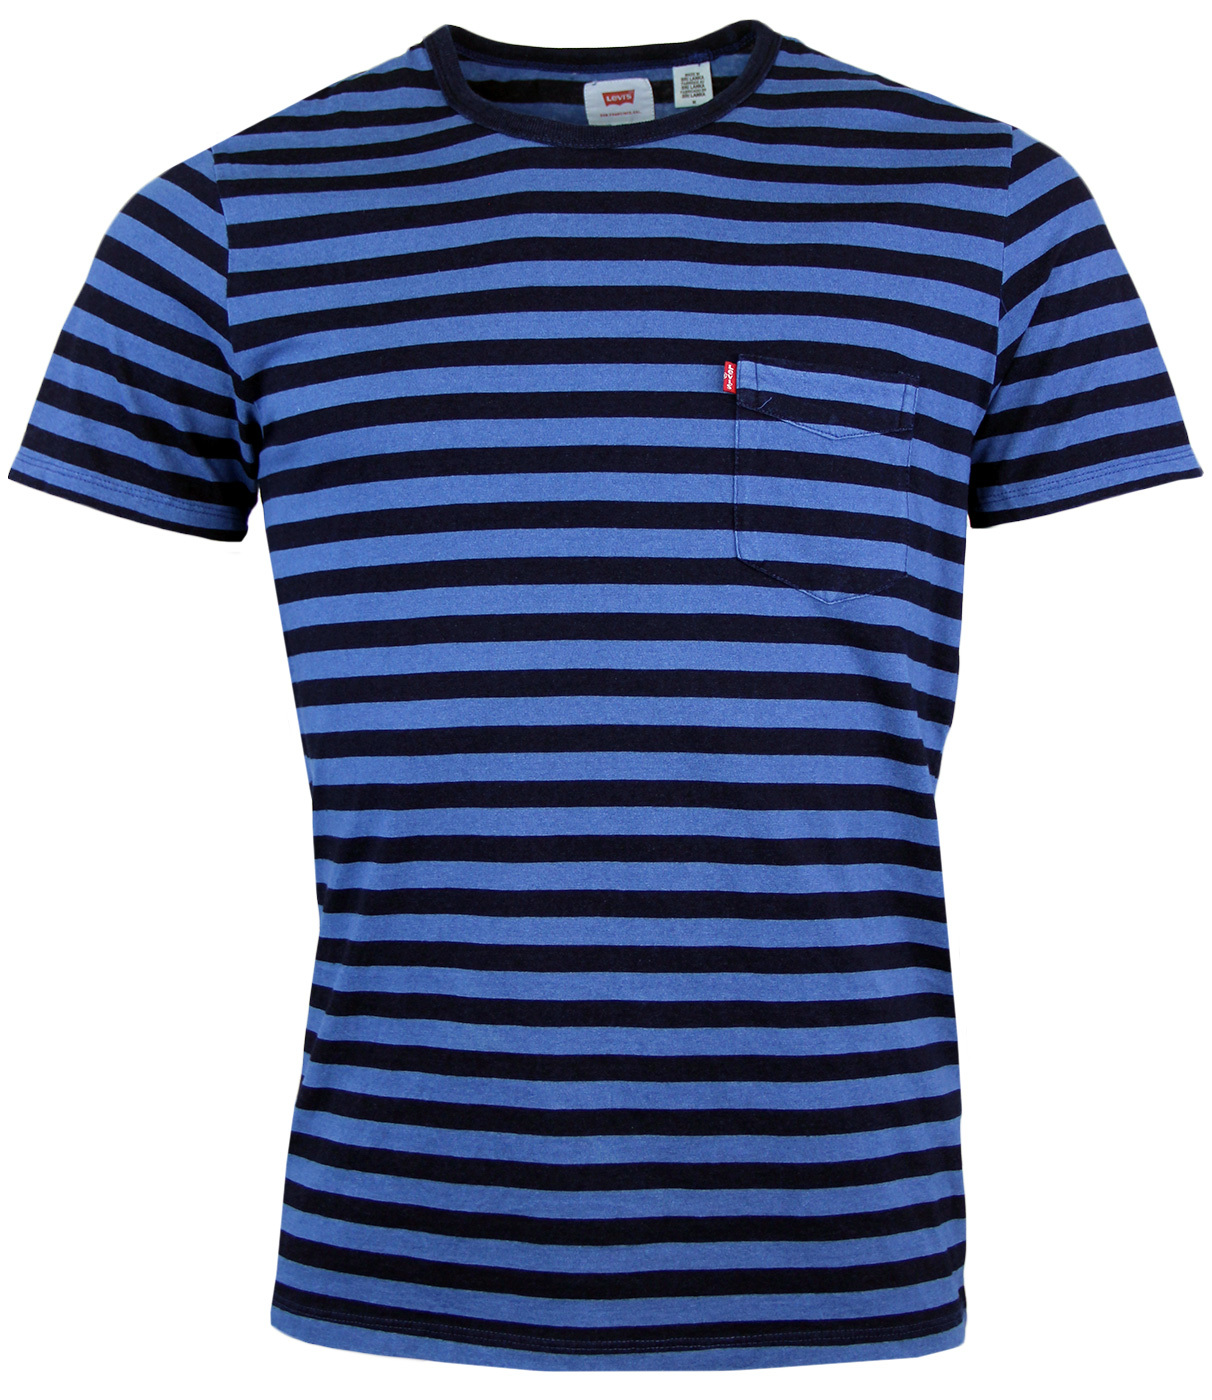 Sunset LEVI'S® Retro Mod 60s Stripe Pocket T-Shirt